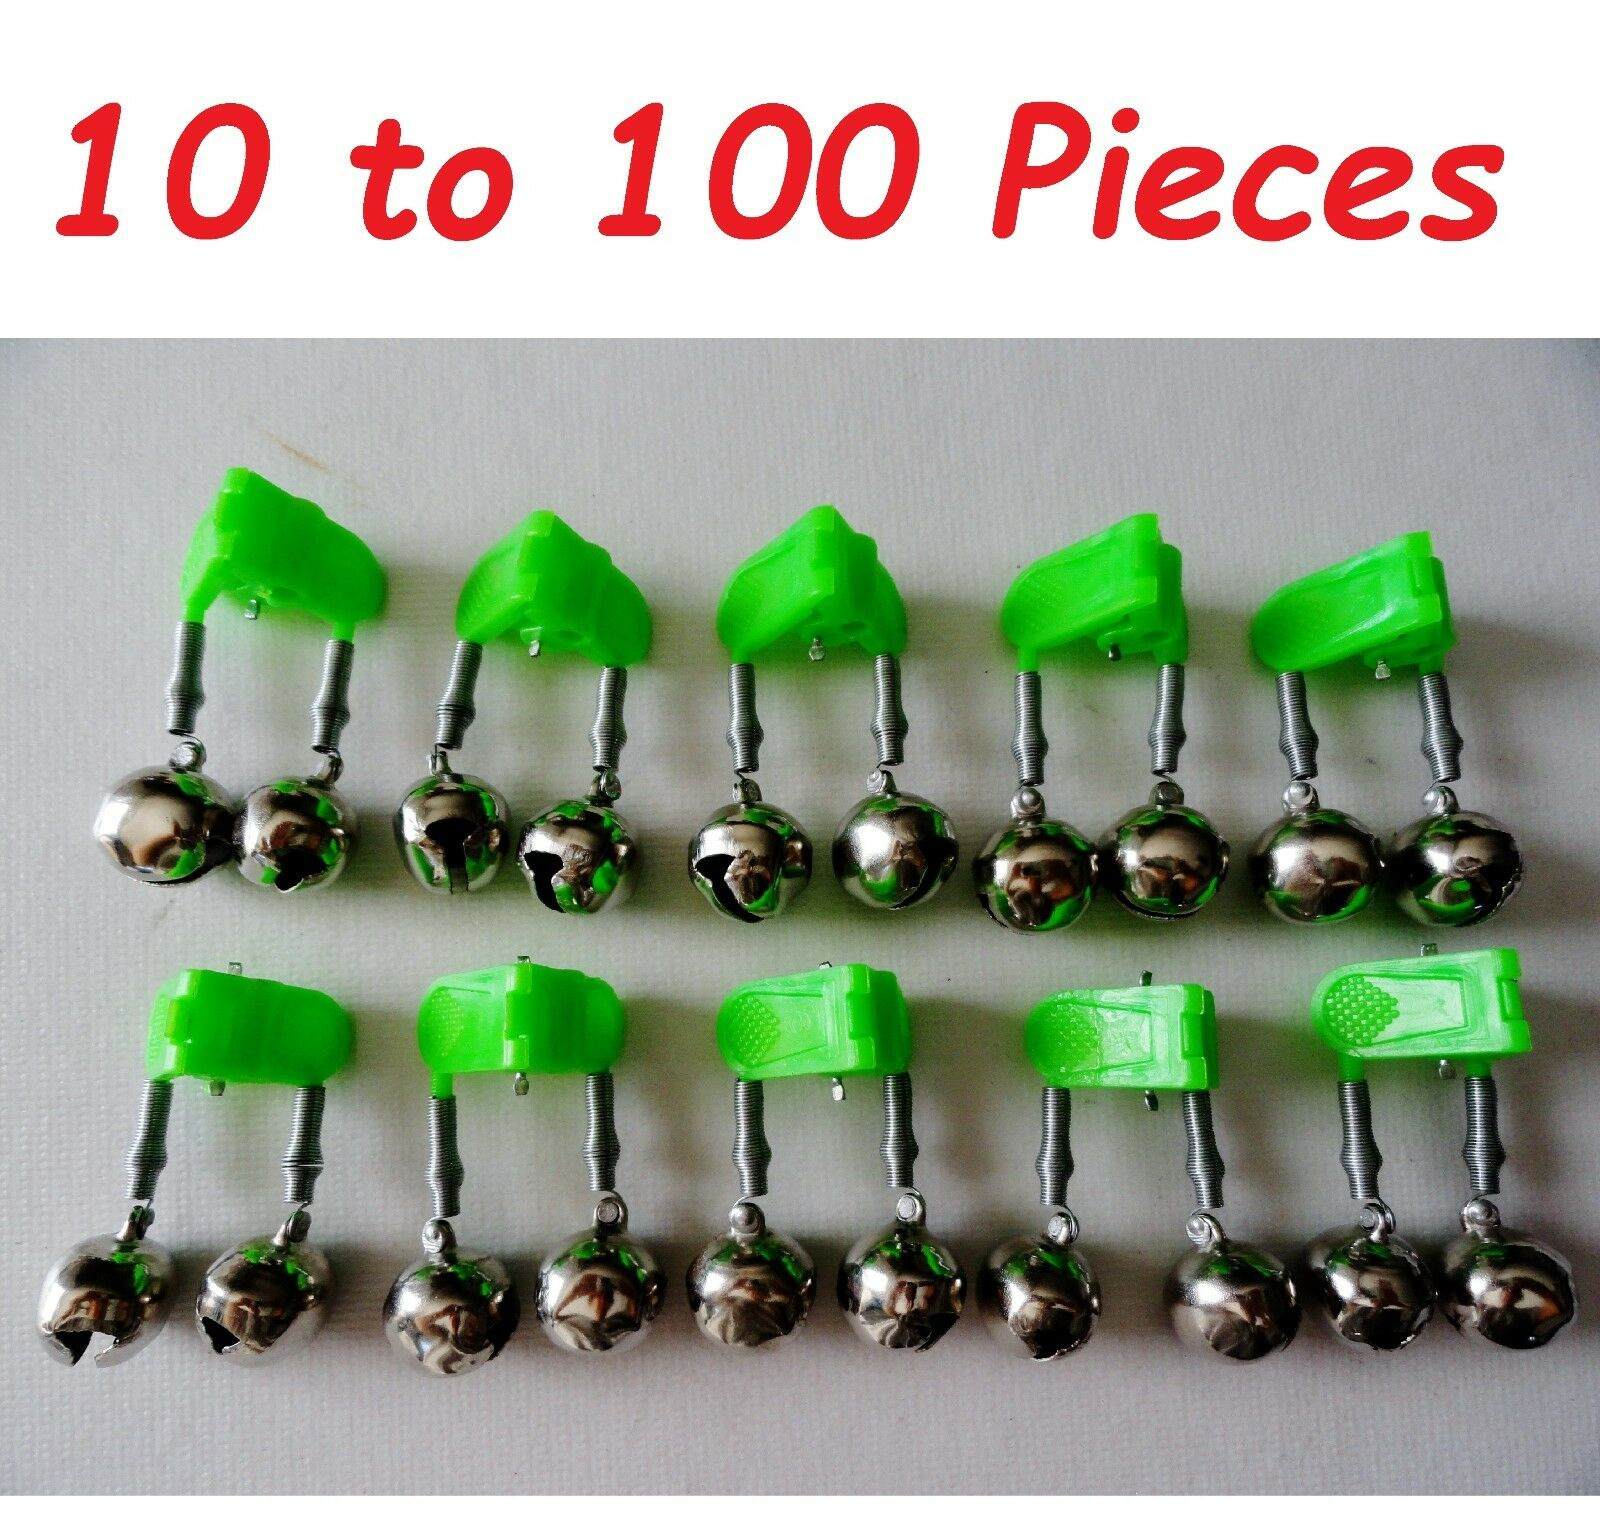 10-100 pcs  Fishing Double Bells Green Clip with Glow Holder Twin Bells  all in high quality and low price